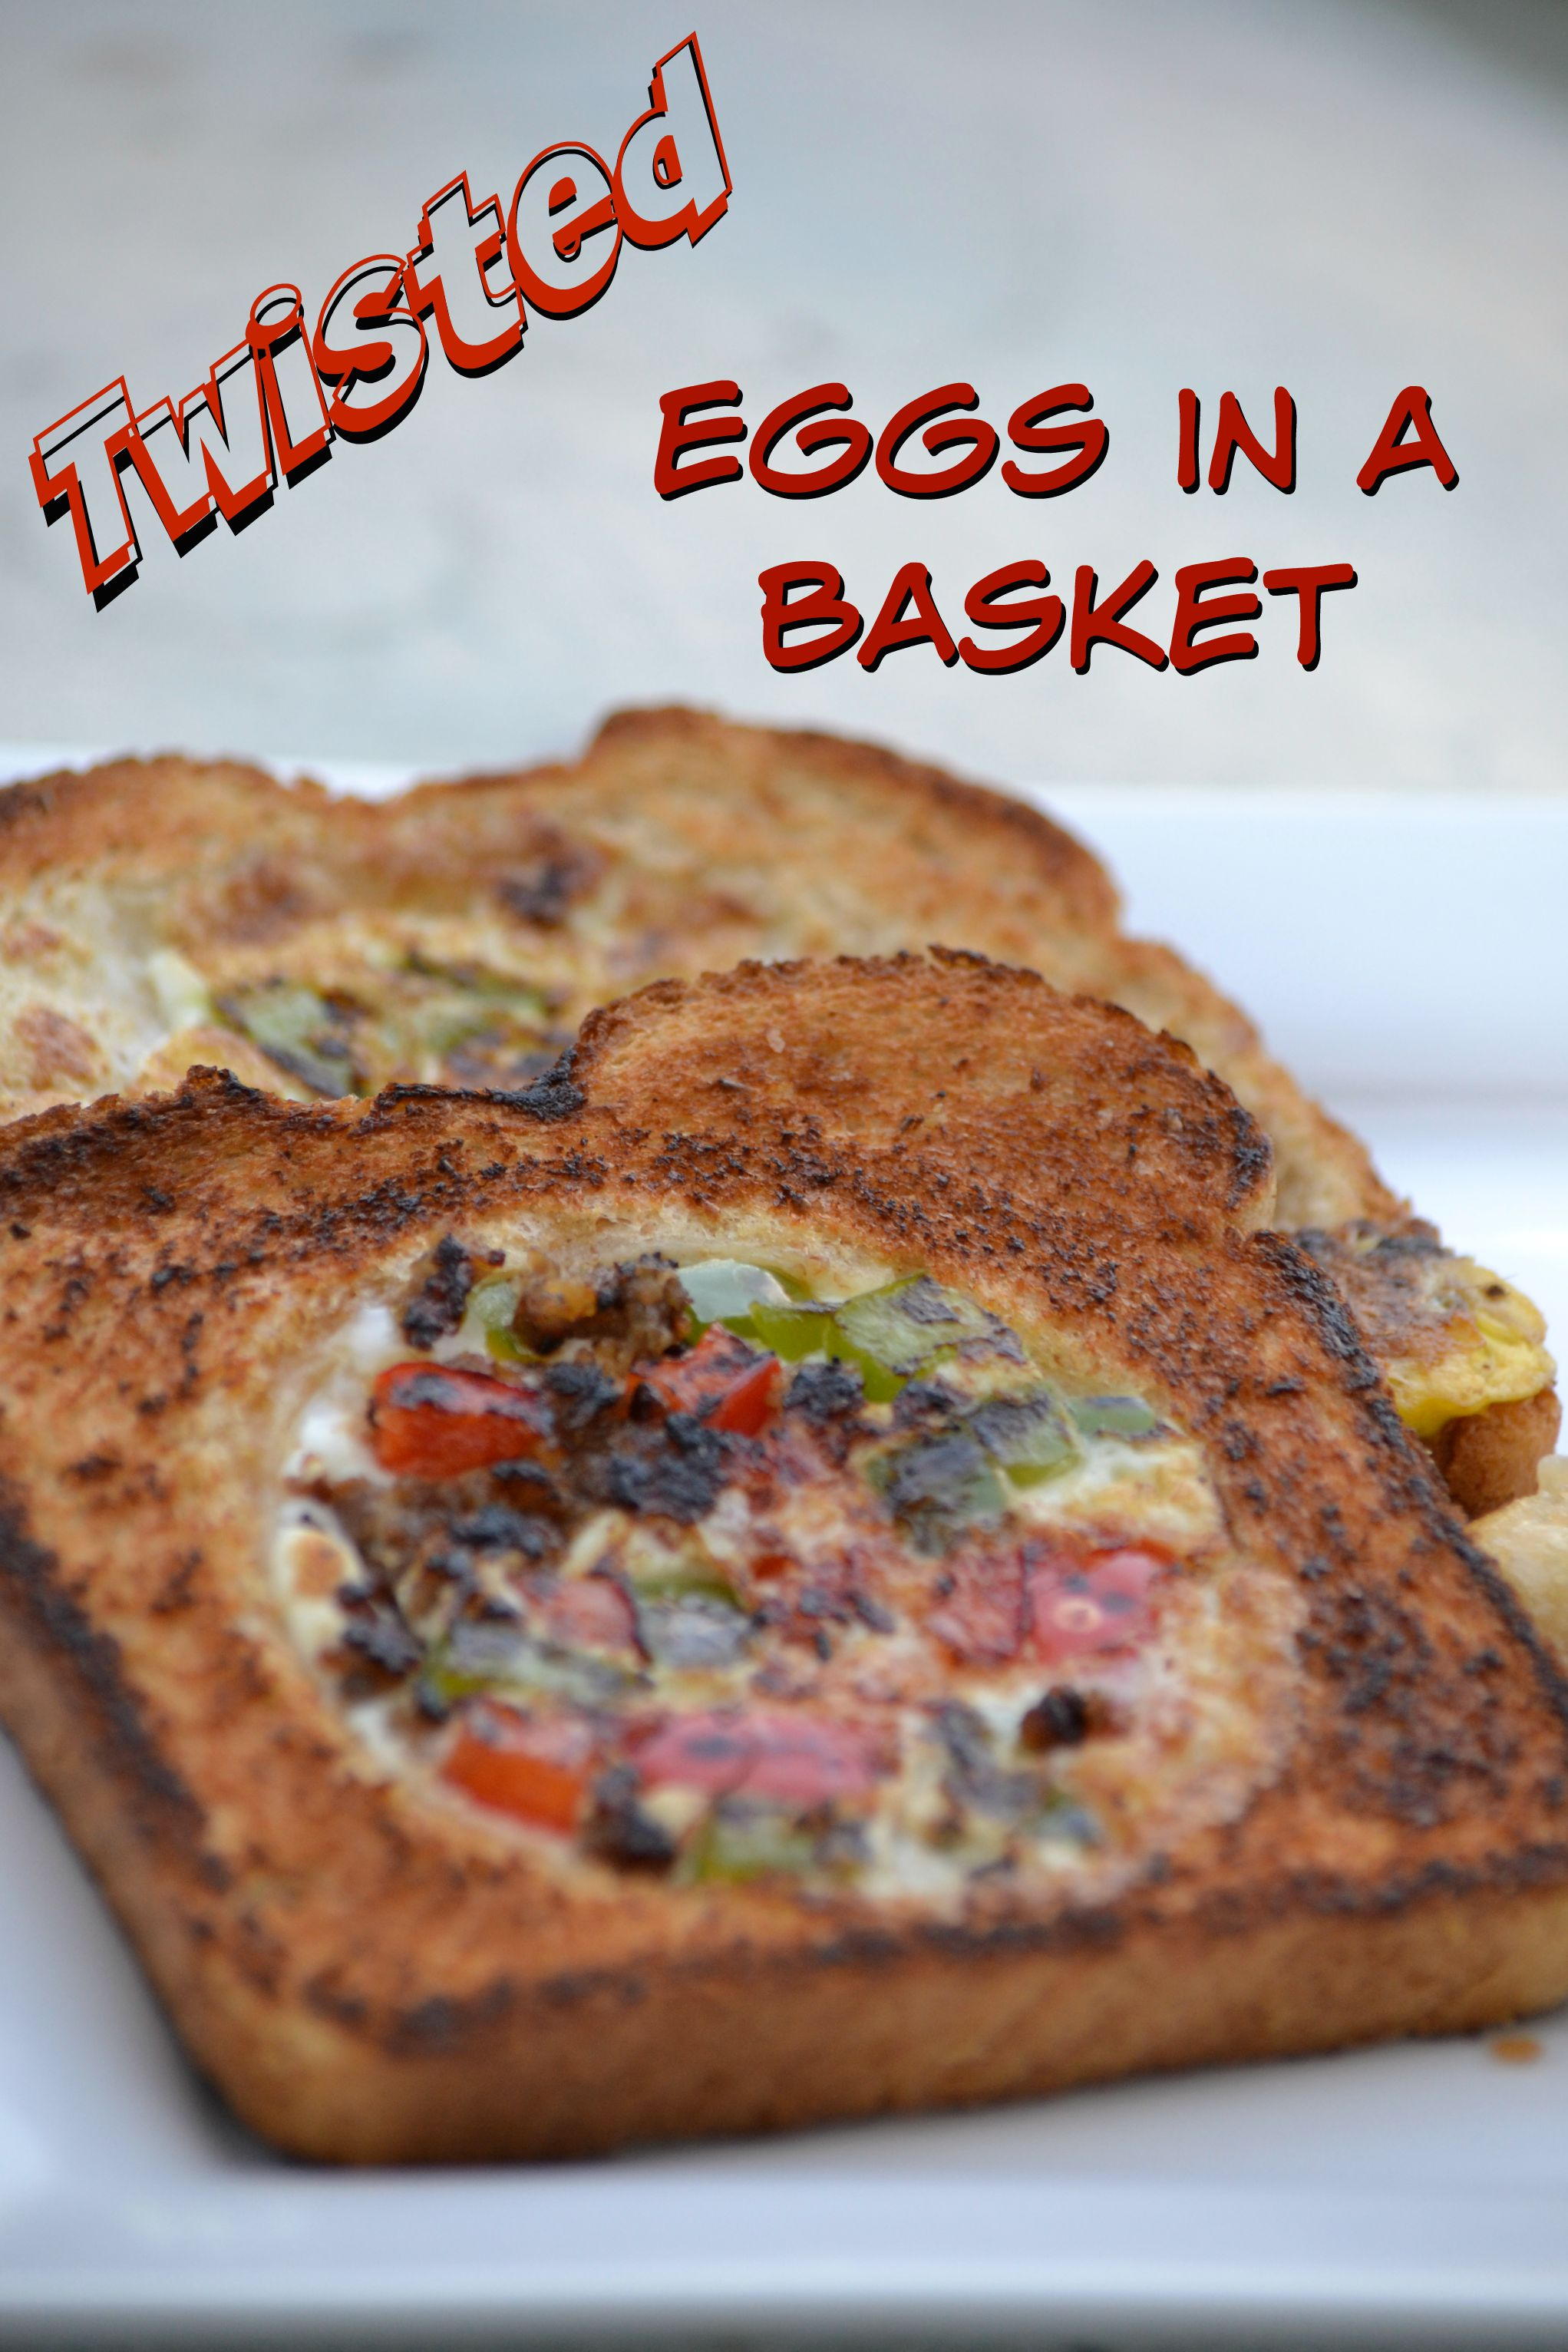 Twisted Eggs In a Basket